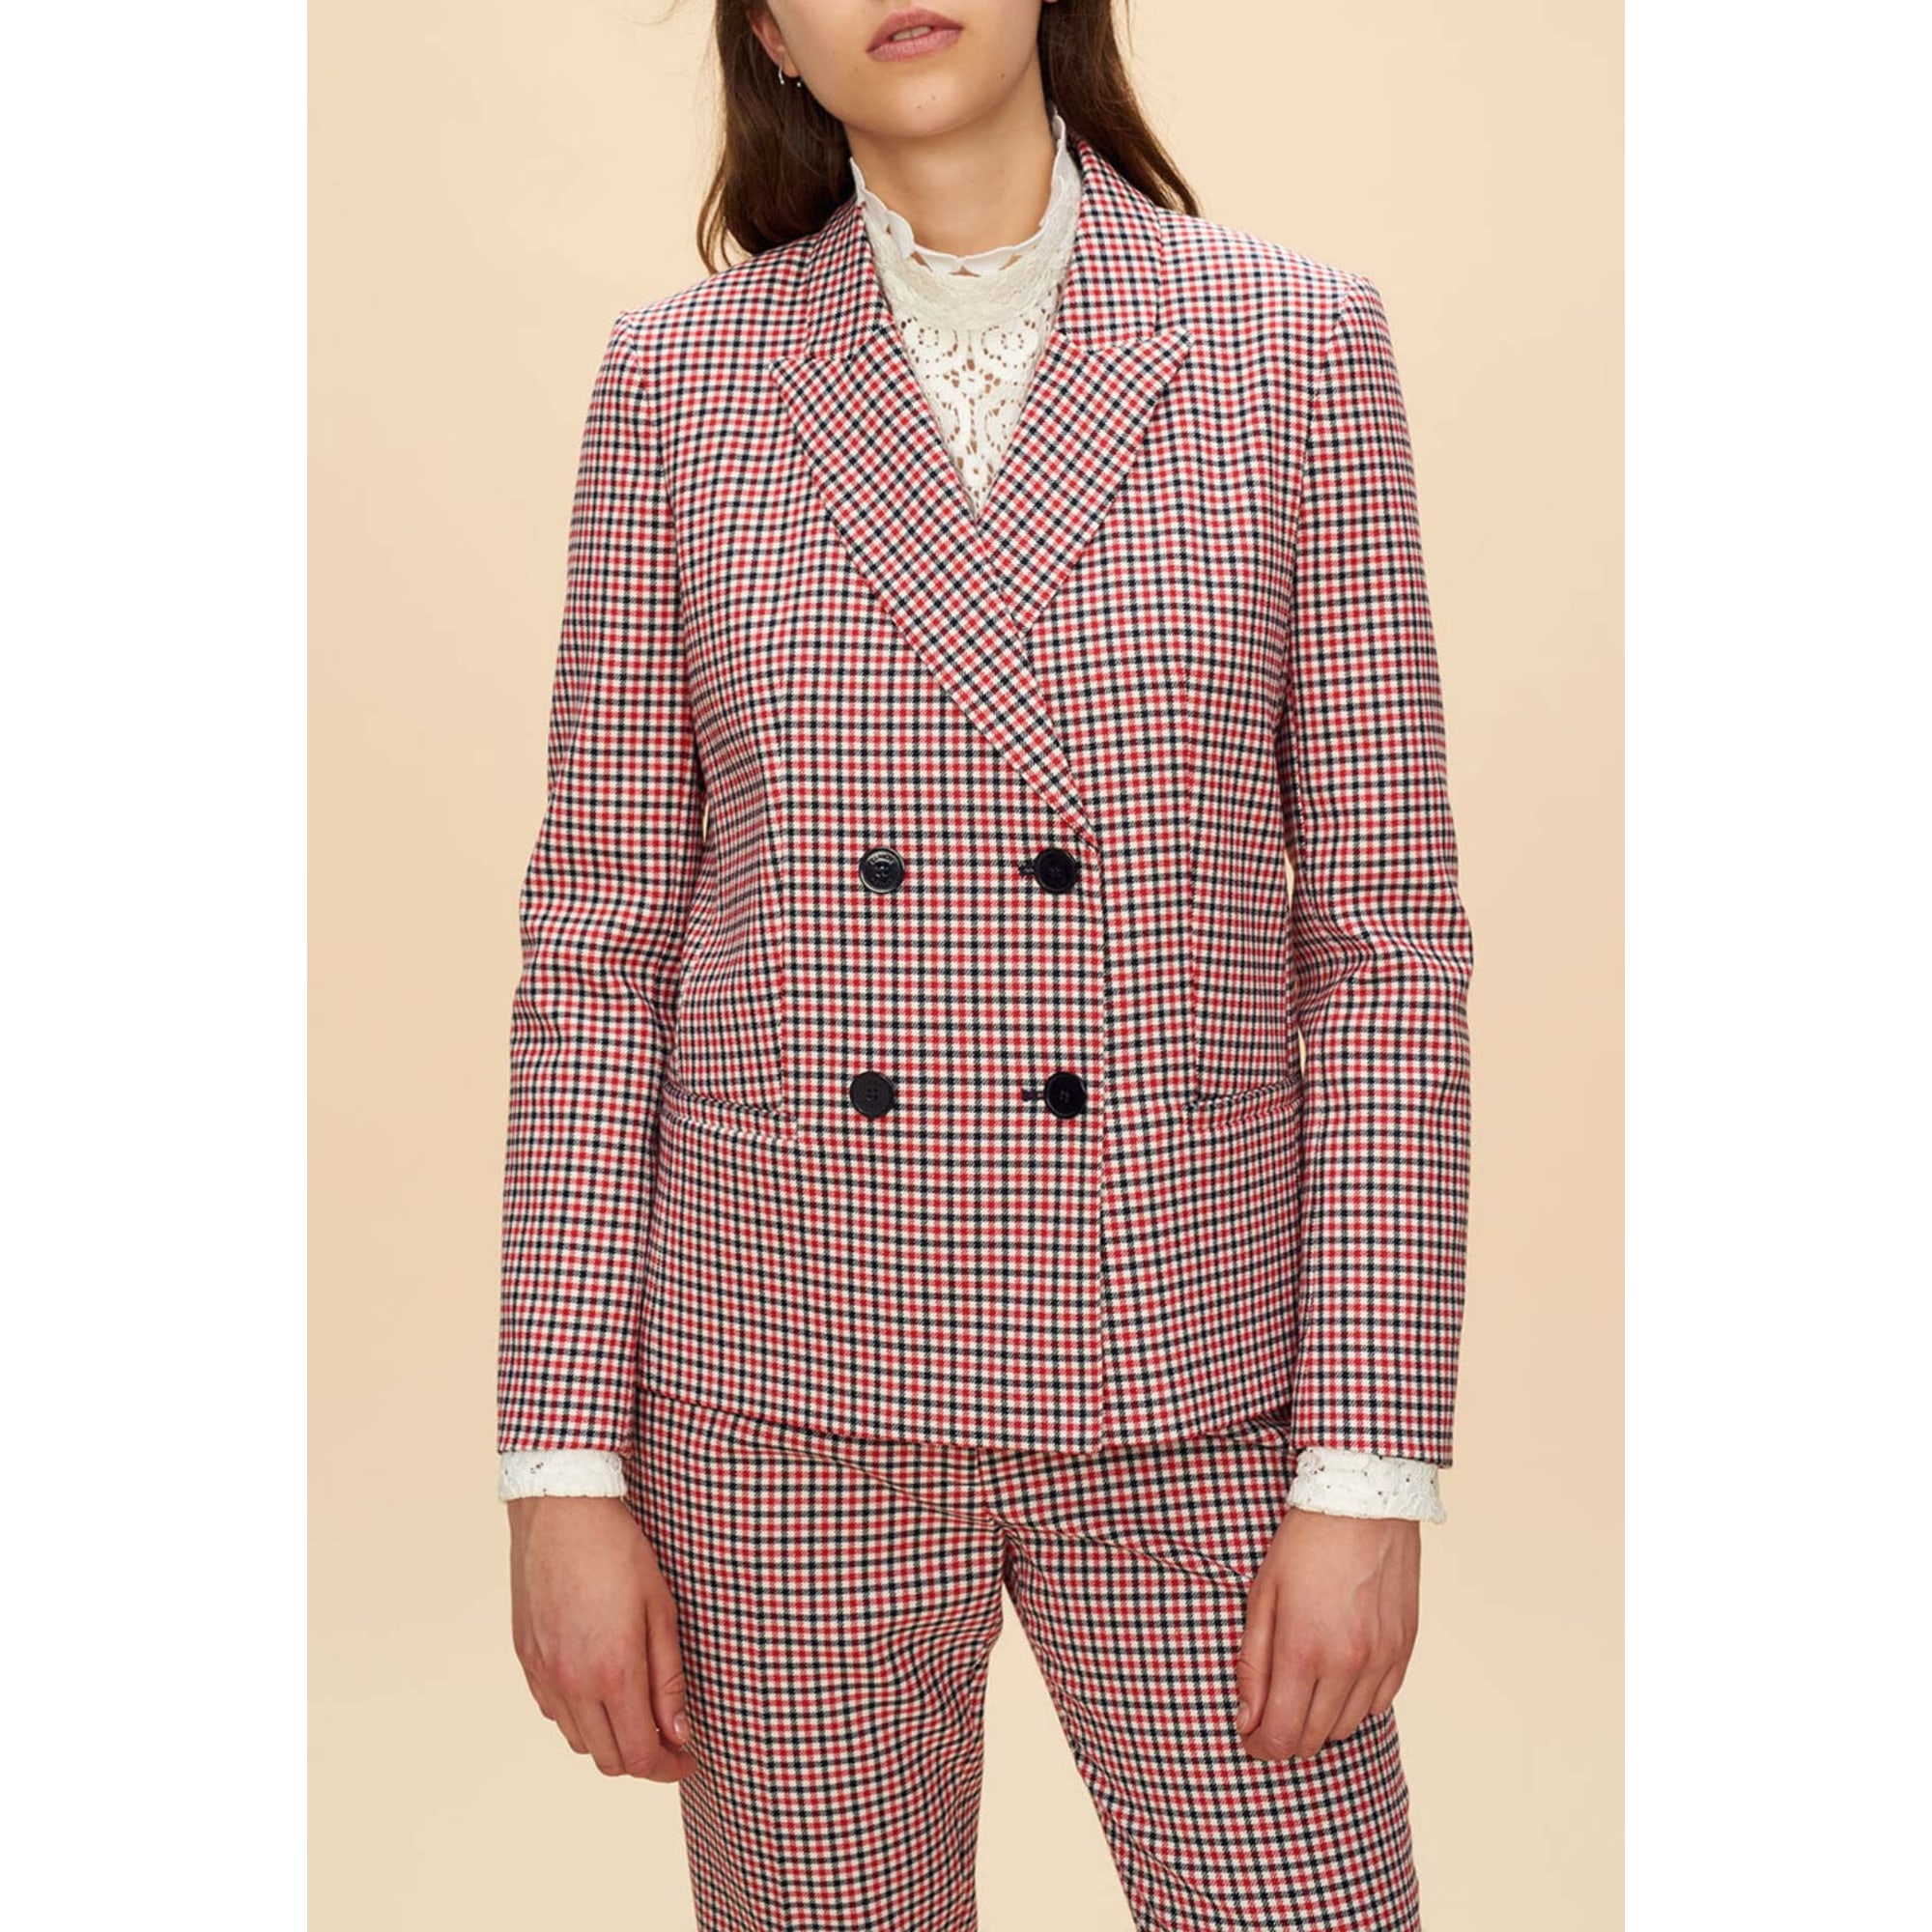 Veste CLAUDIE PIERLOT Rouge, bordeaux